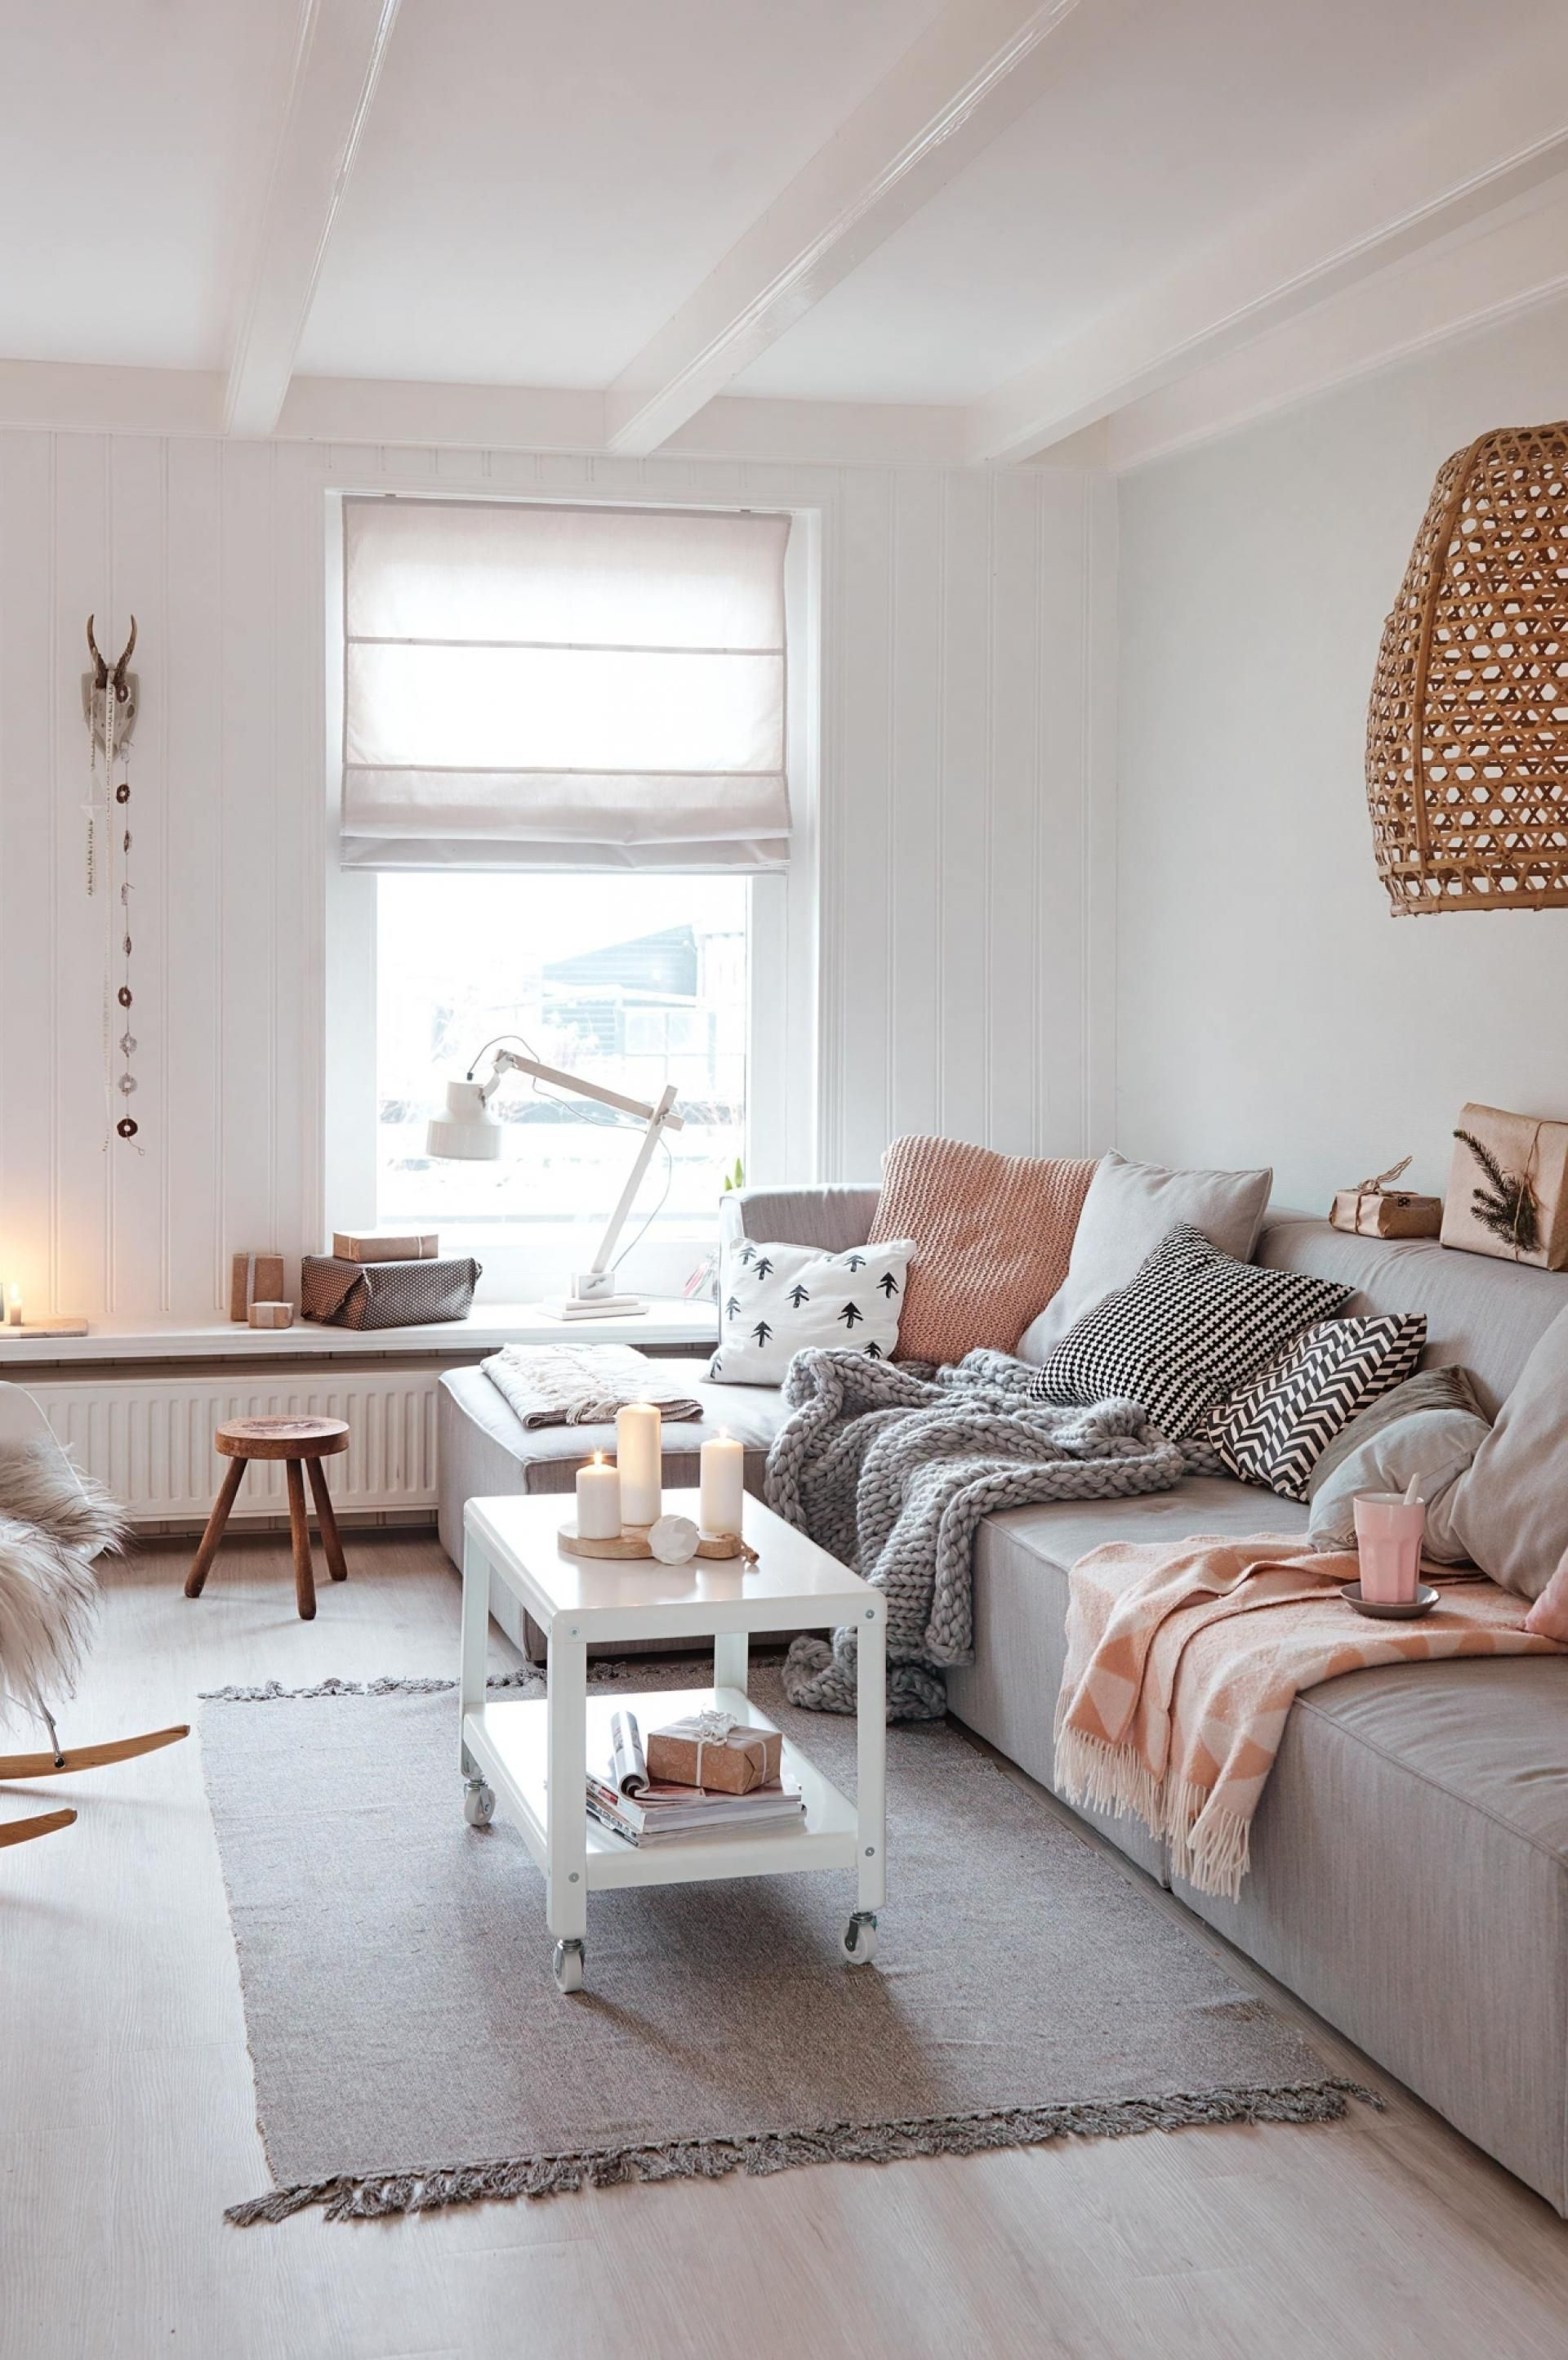 Scandinavian living room with neutral colors and pastel pink accents top 10 tips for adding scandinavian style to your home